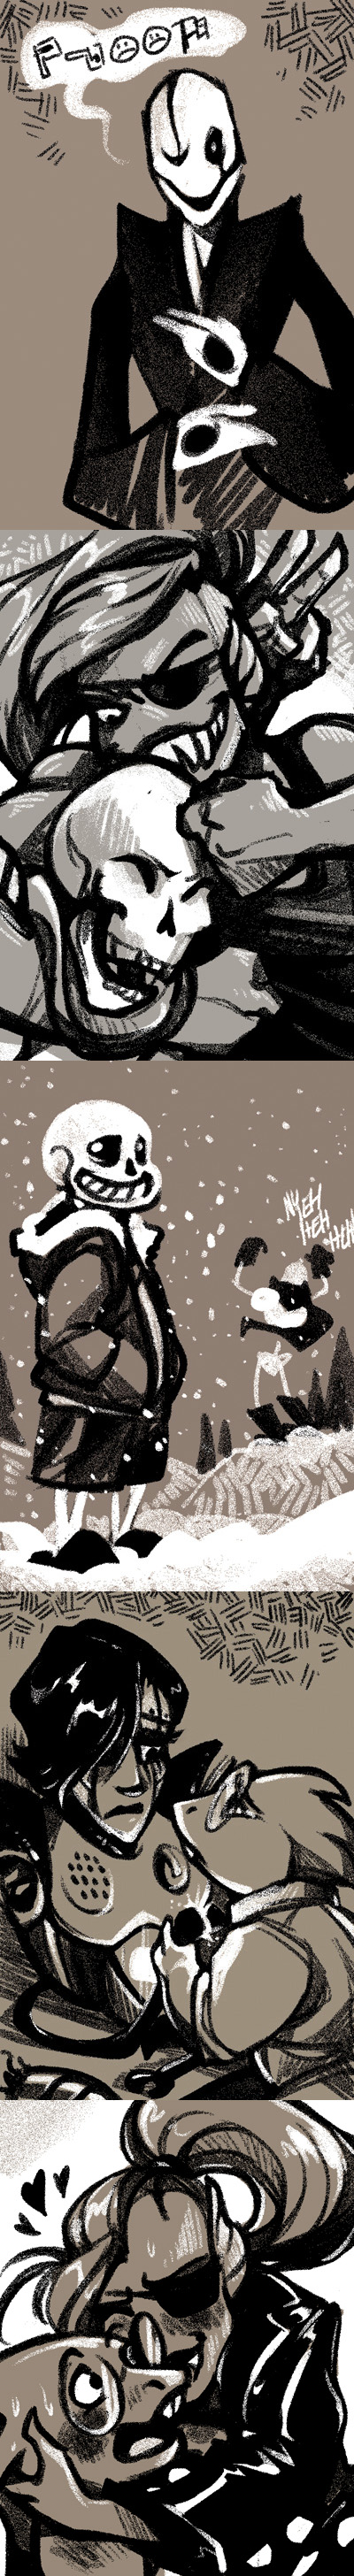 Undertale Toned Sketches by Shazzbaa